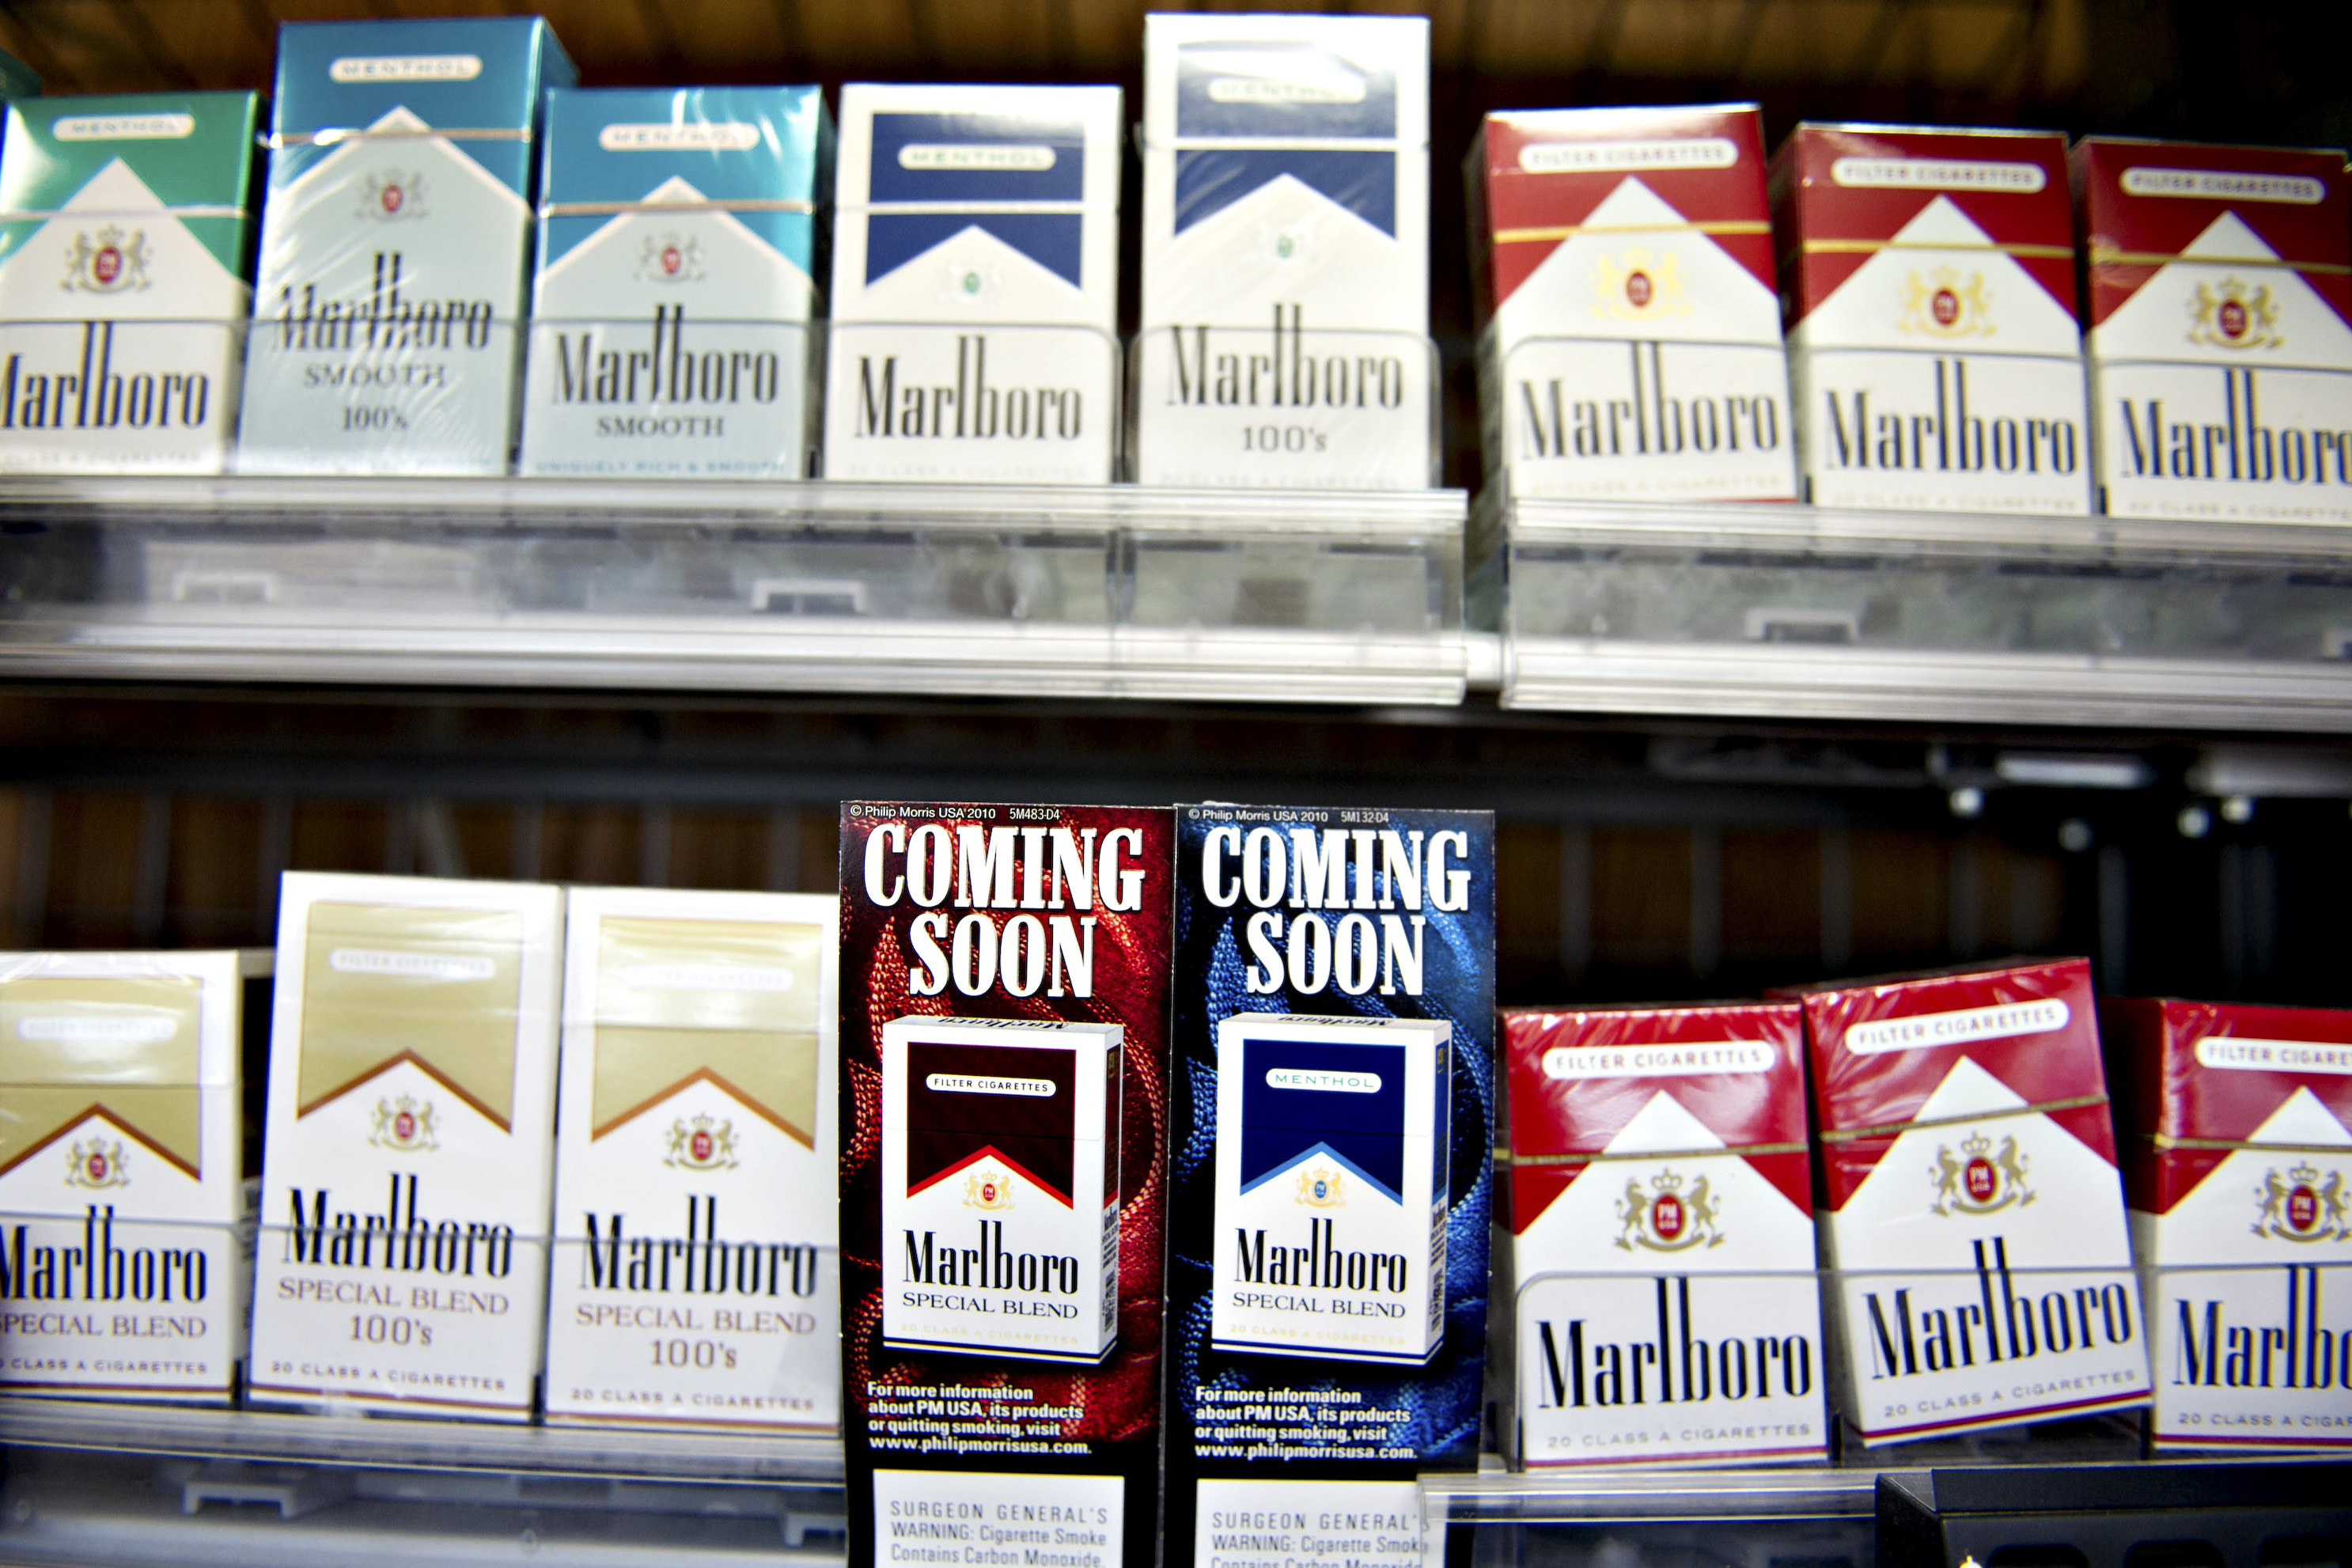 Cigarettes marlboro price buy tobacco online with paypal